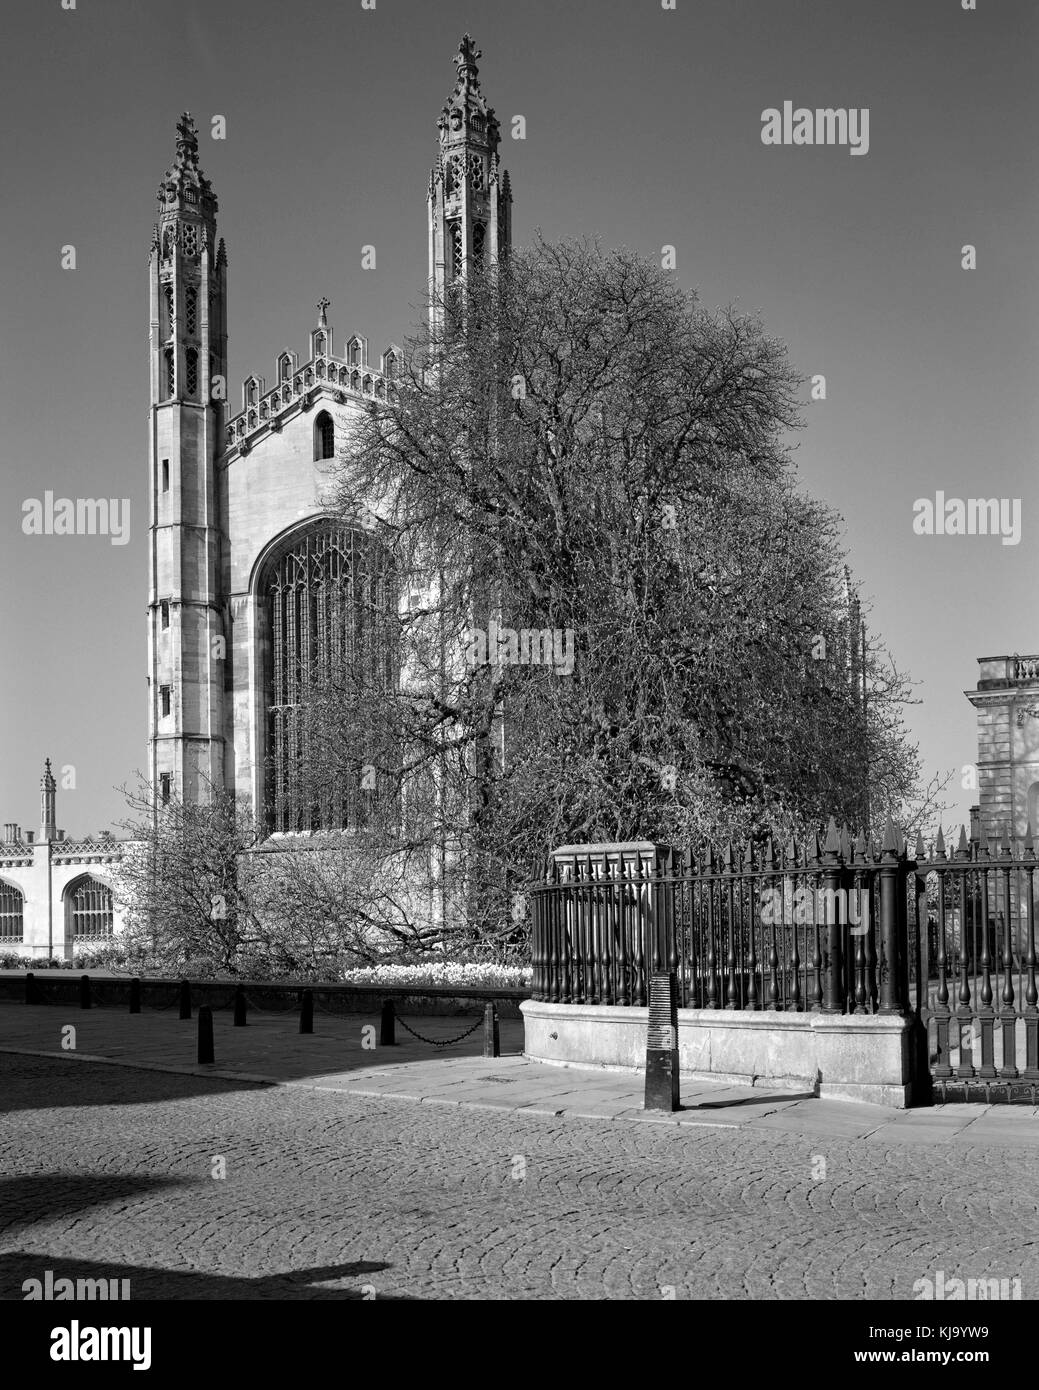 King's College Chapel on King's Parade Cambridge - Stock Image